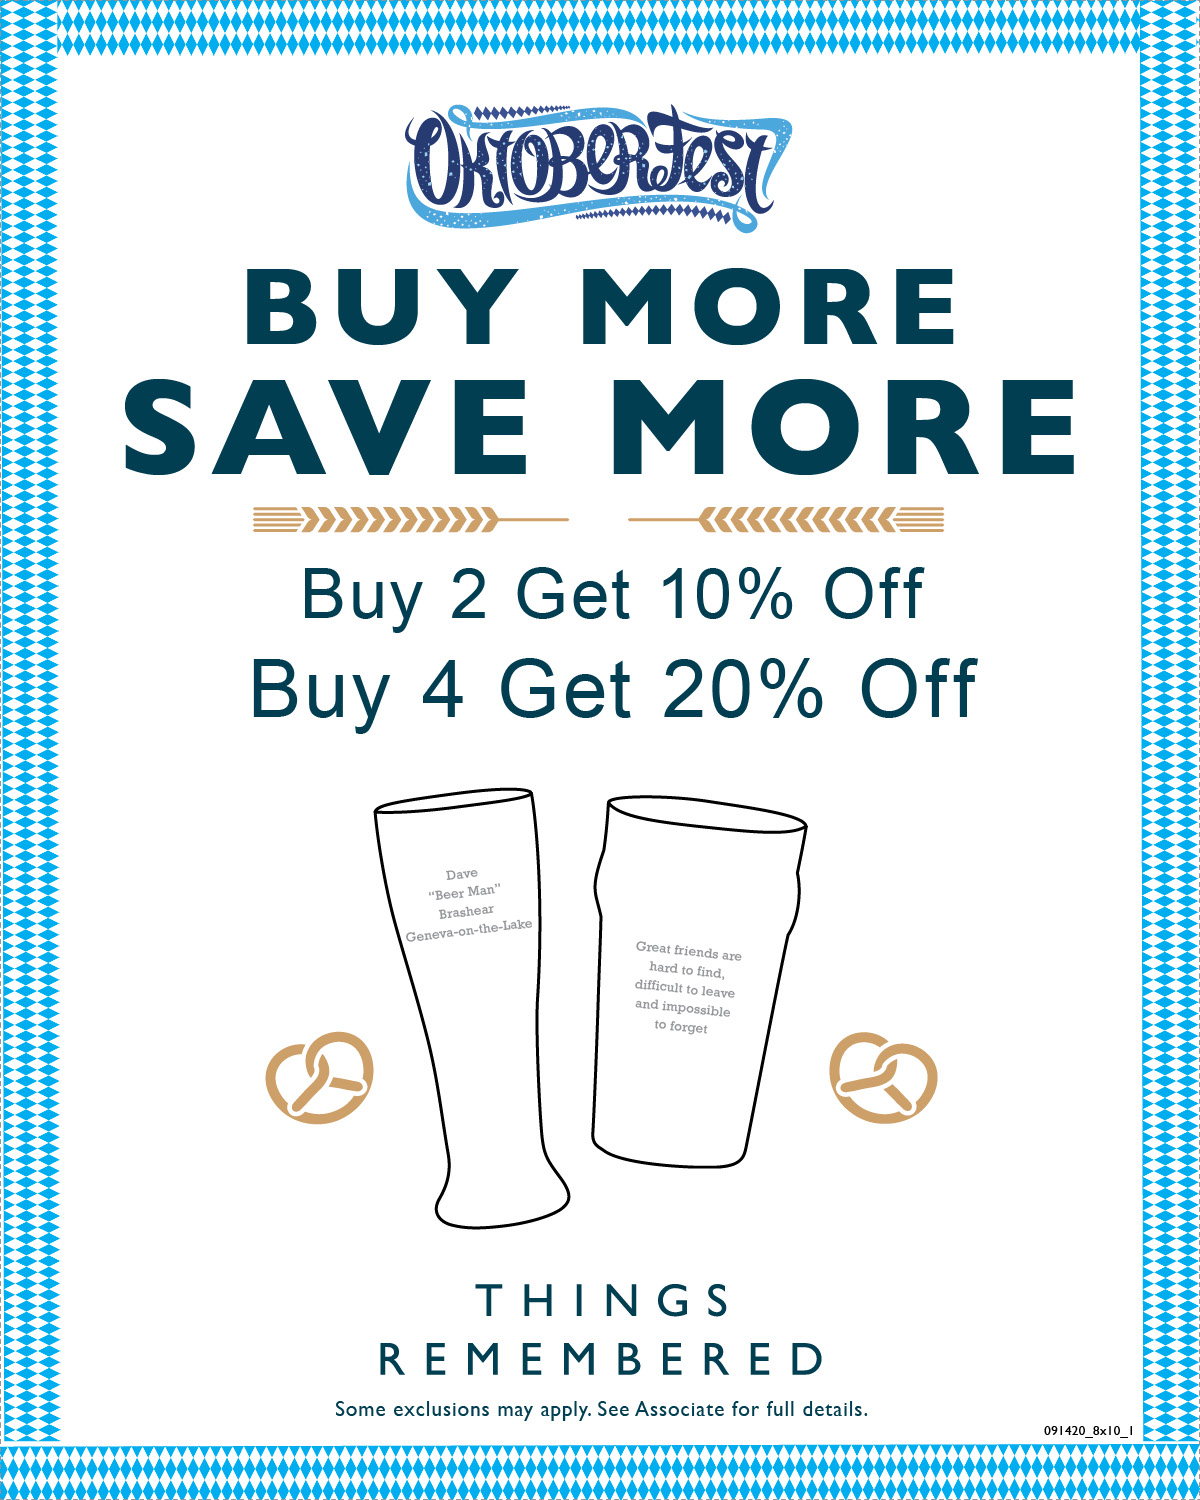 Oktoberfest Buy More Save More